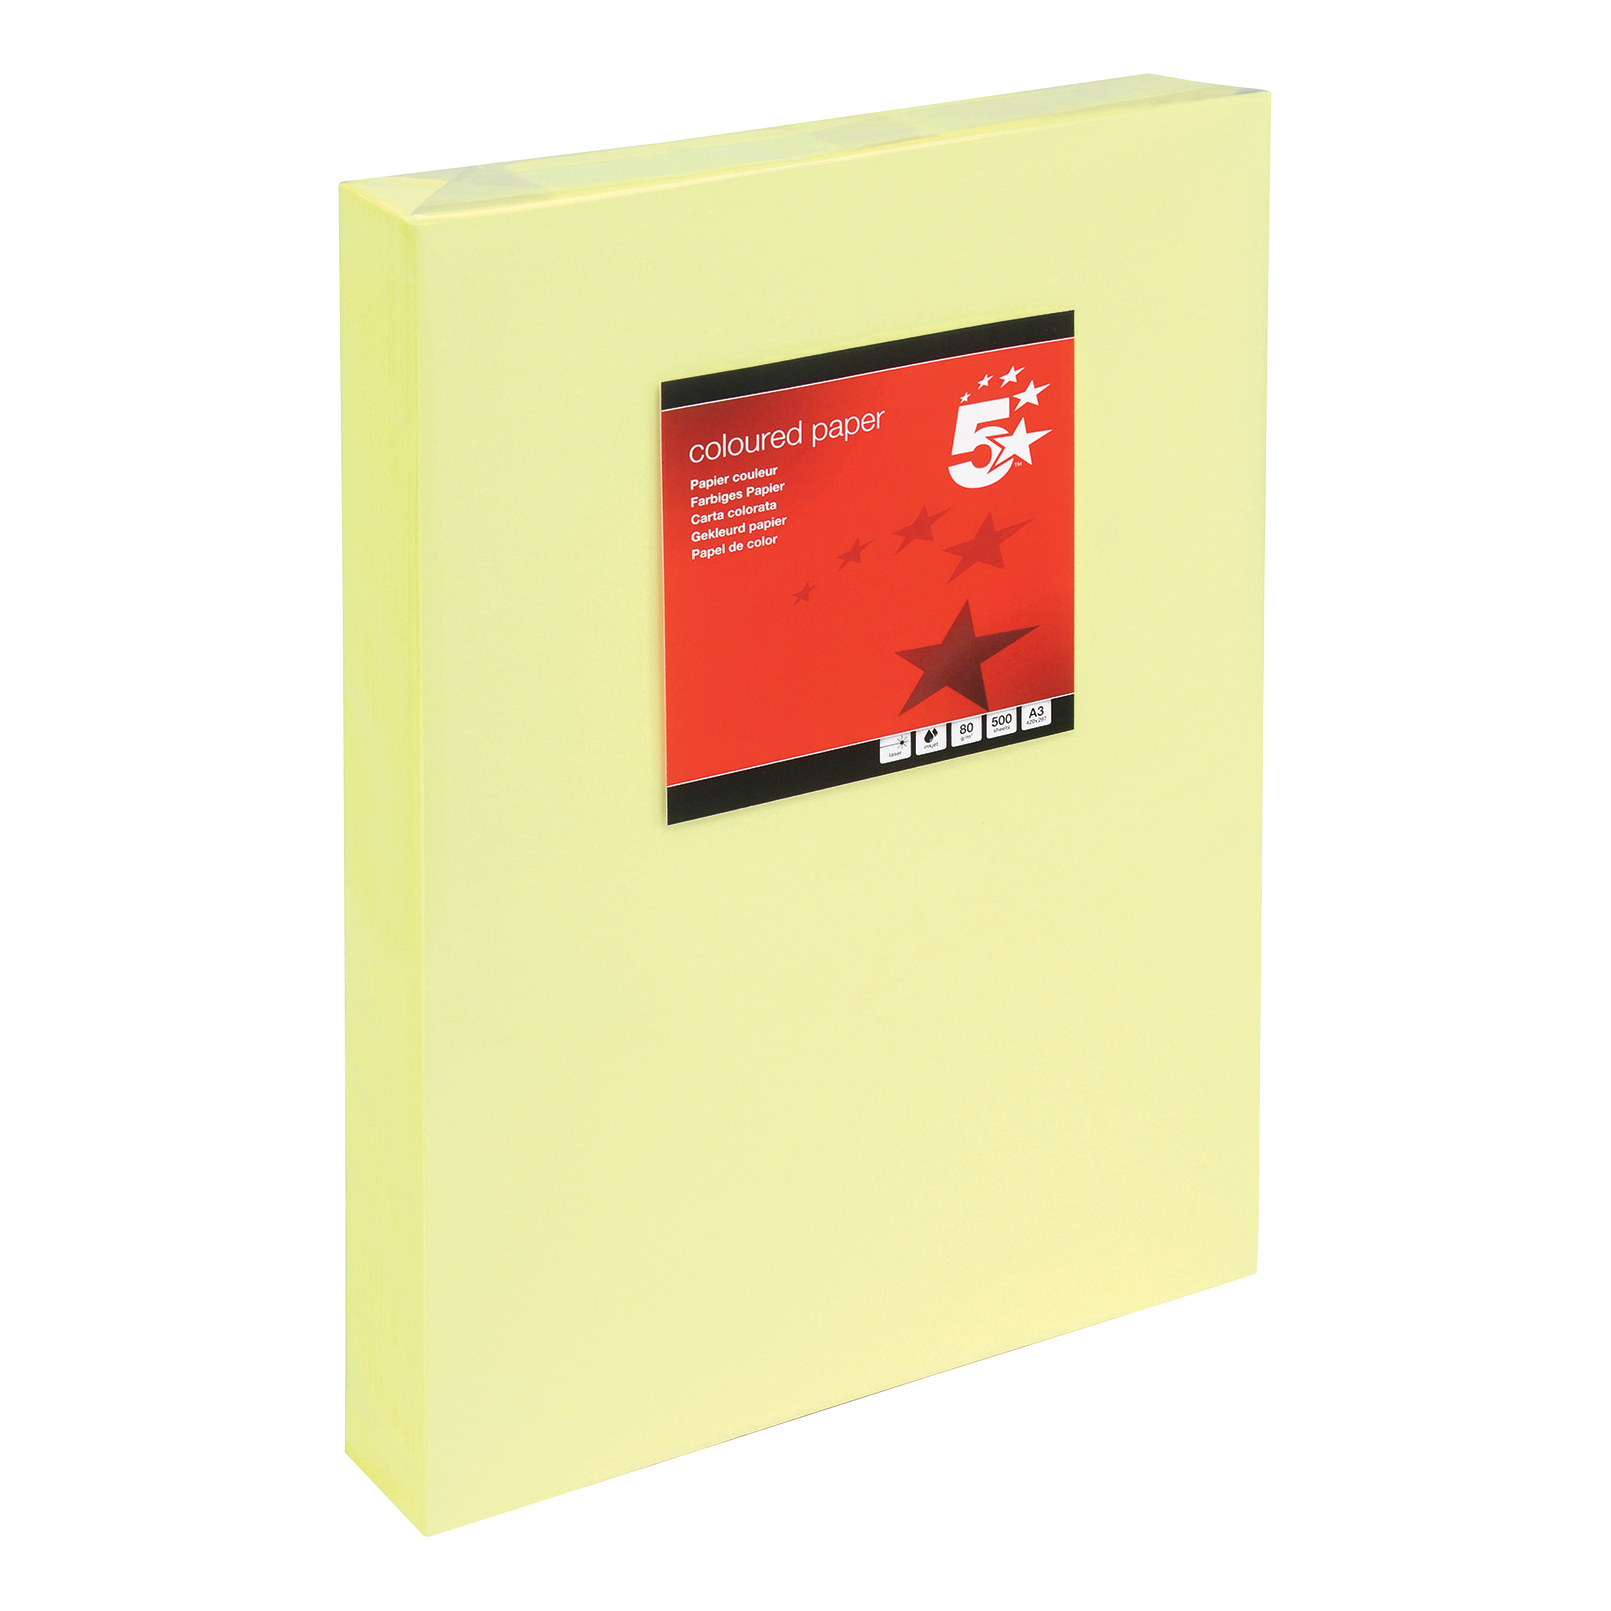 5 Star Copier Paper Multifunctional 80gsm 500 Sheets per Ream A3 Light Yellow